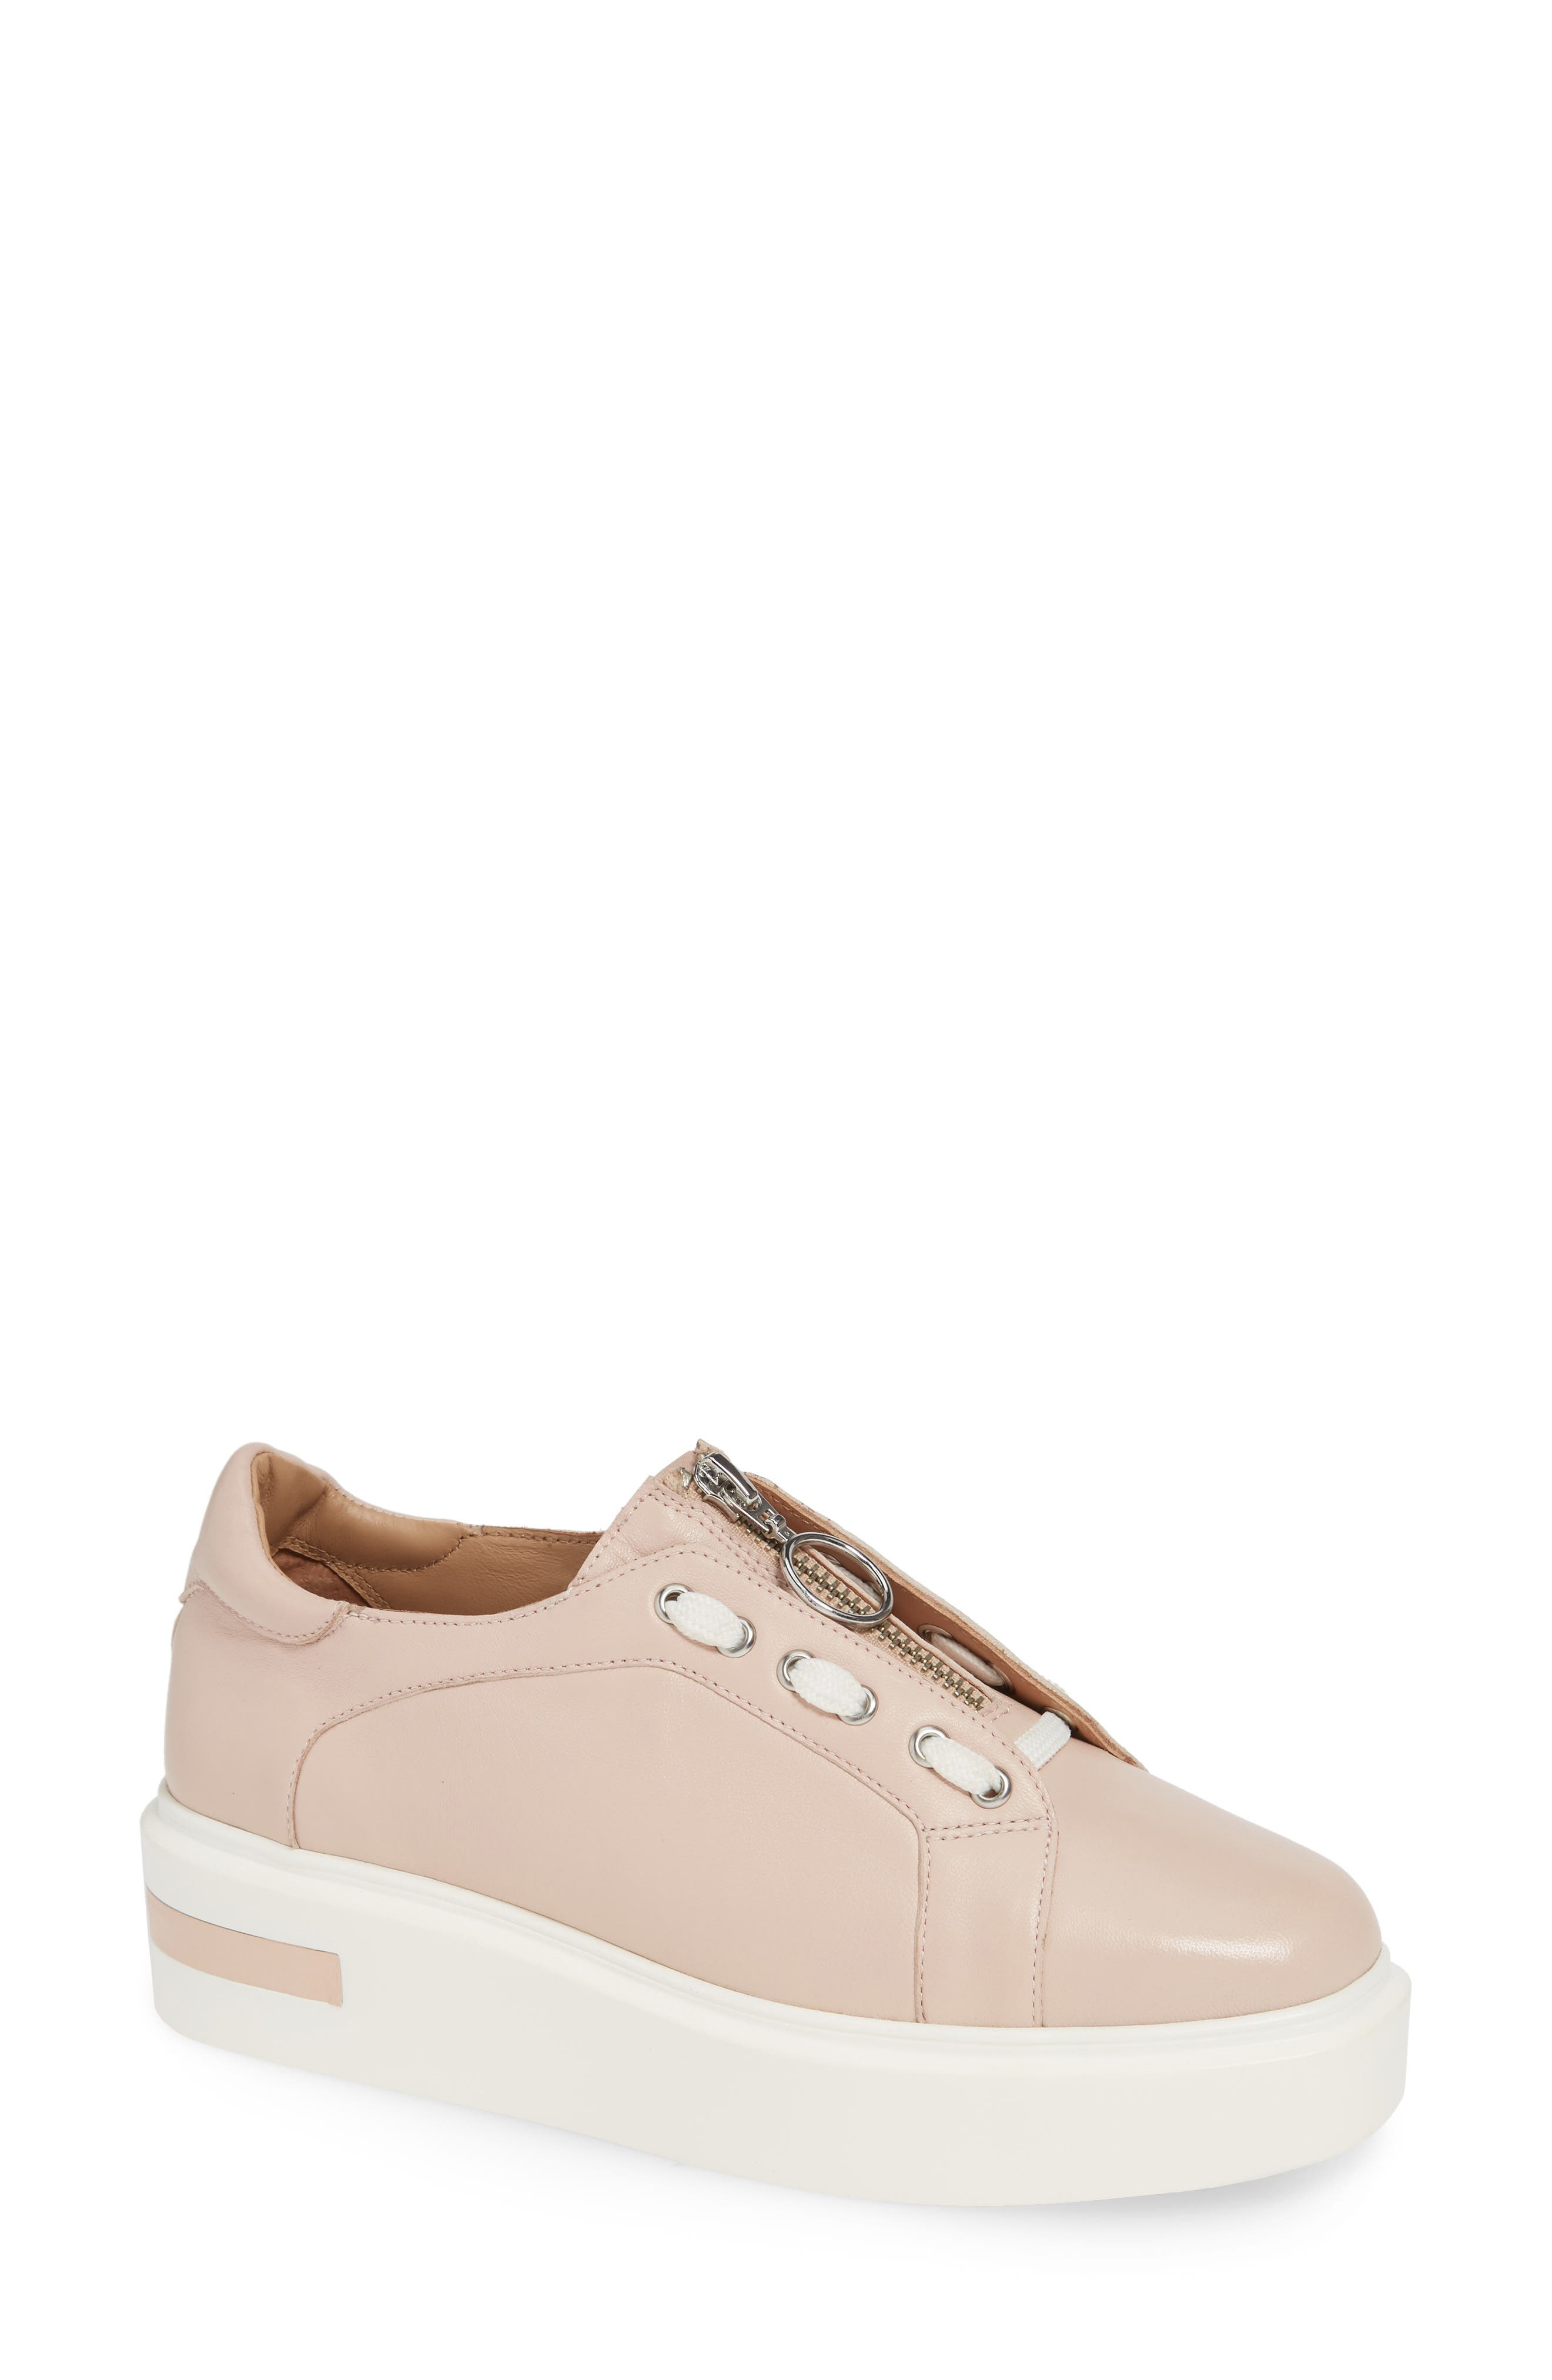 LINEA PAOLO,                             Killian Platform Sneaker,                             Main thumbnail 1, color,                             BLUSH LEATHER